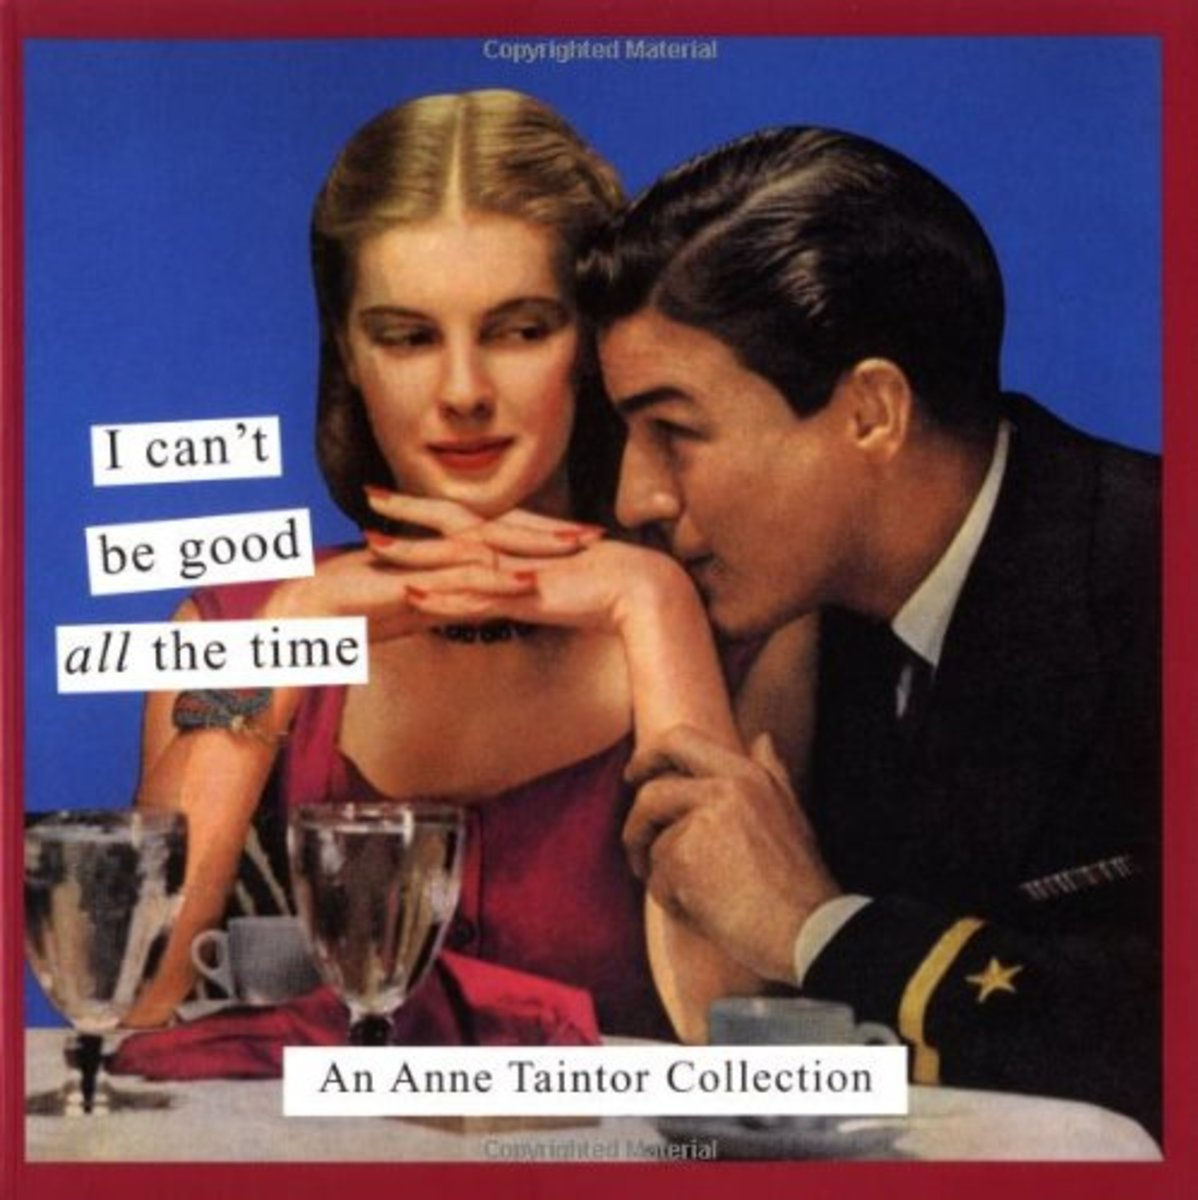 anne-taintors-hilarious-i-cant-be-good-all-thetime-book